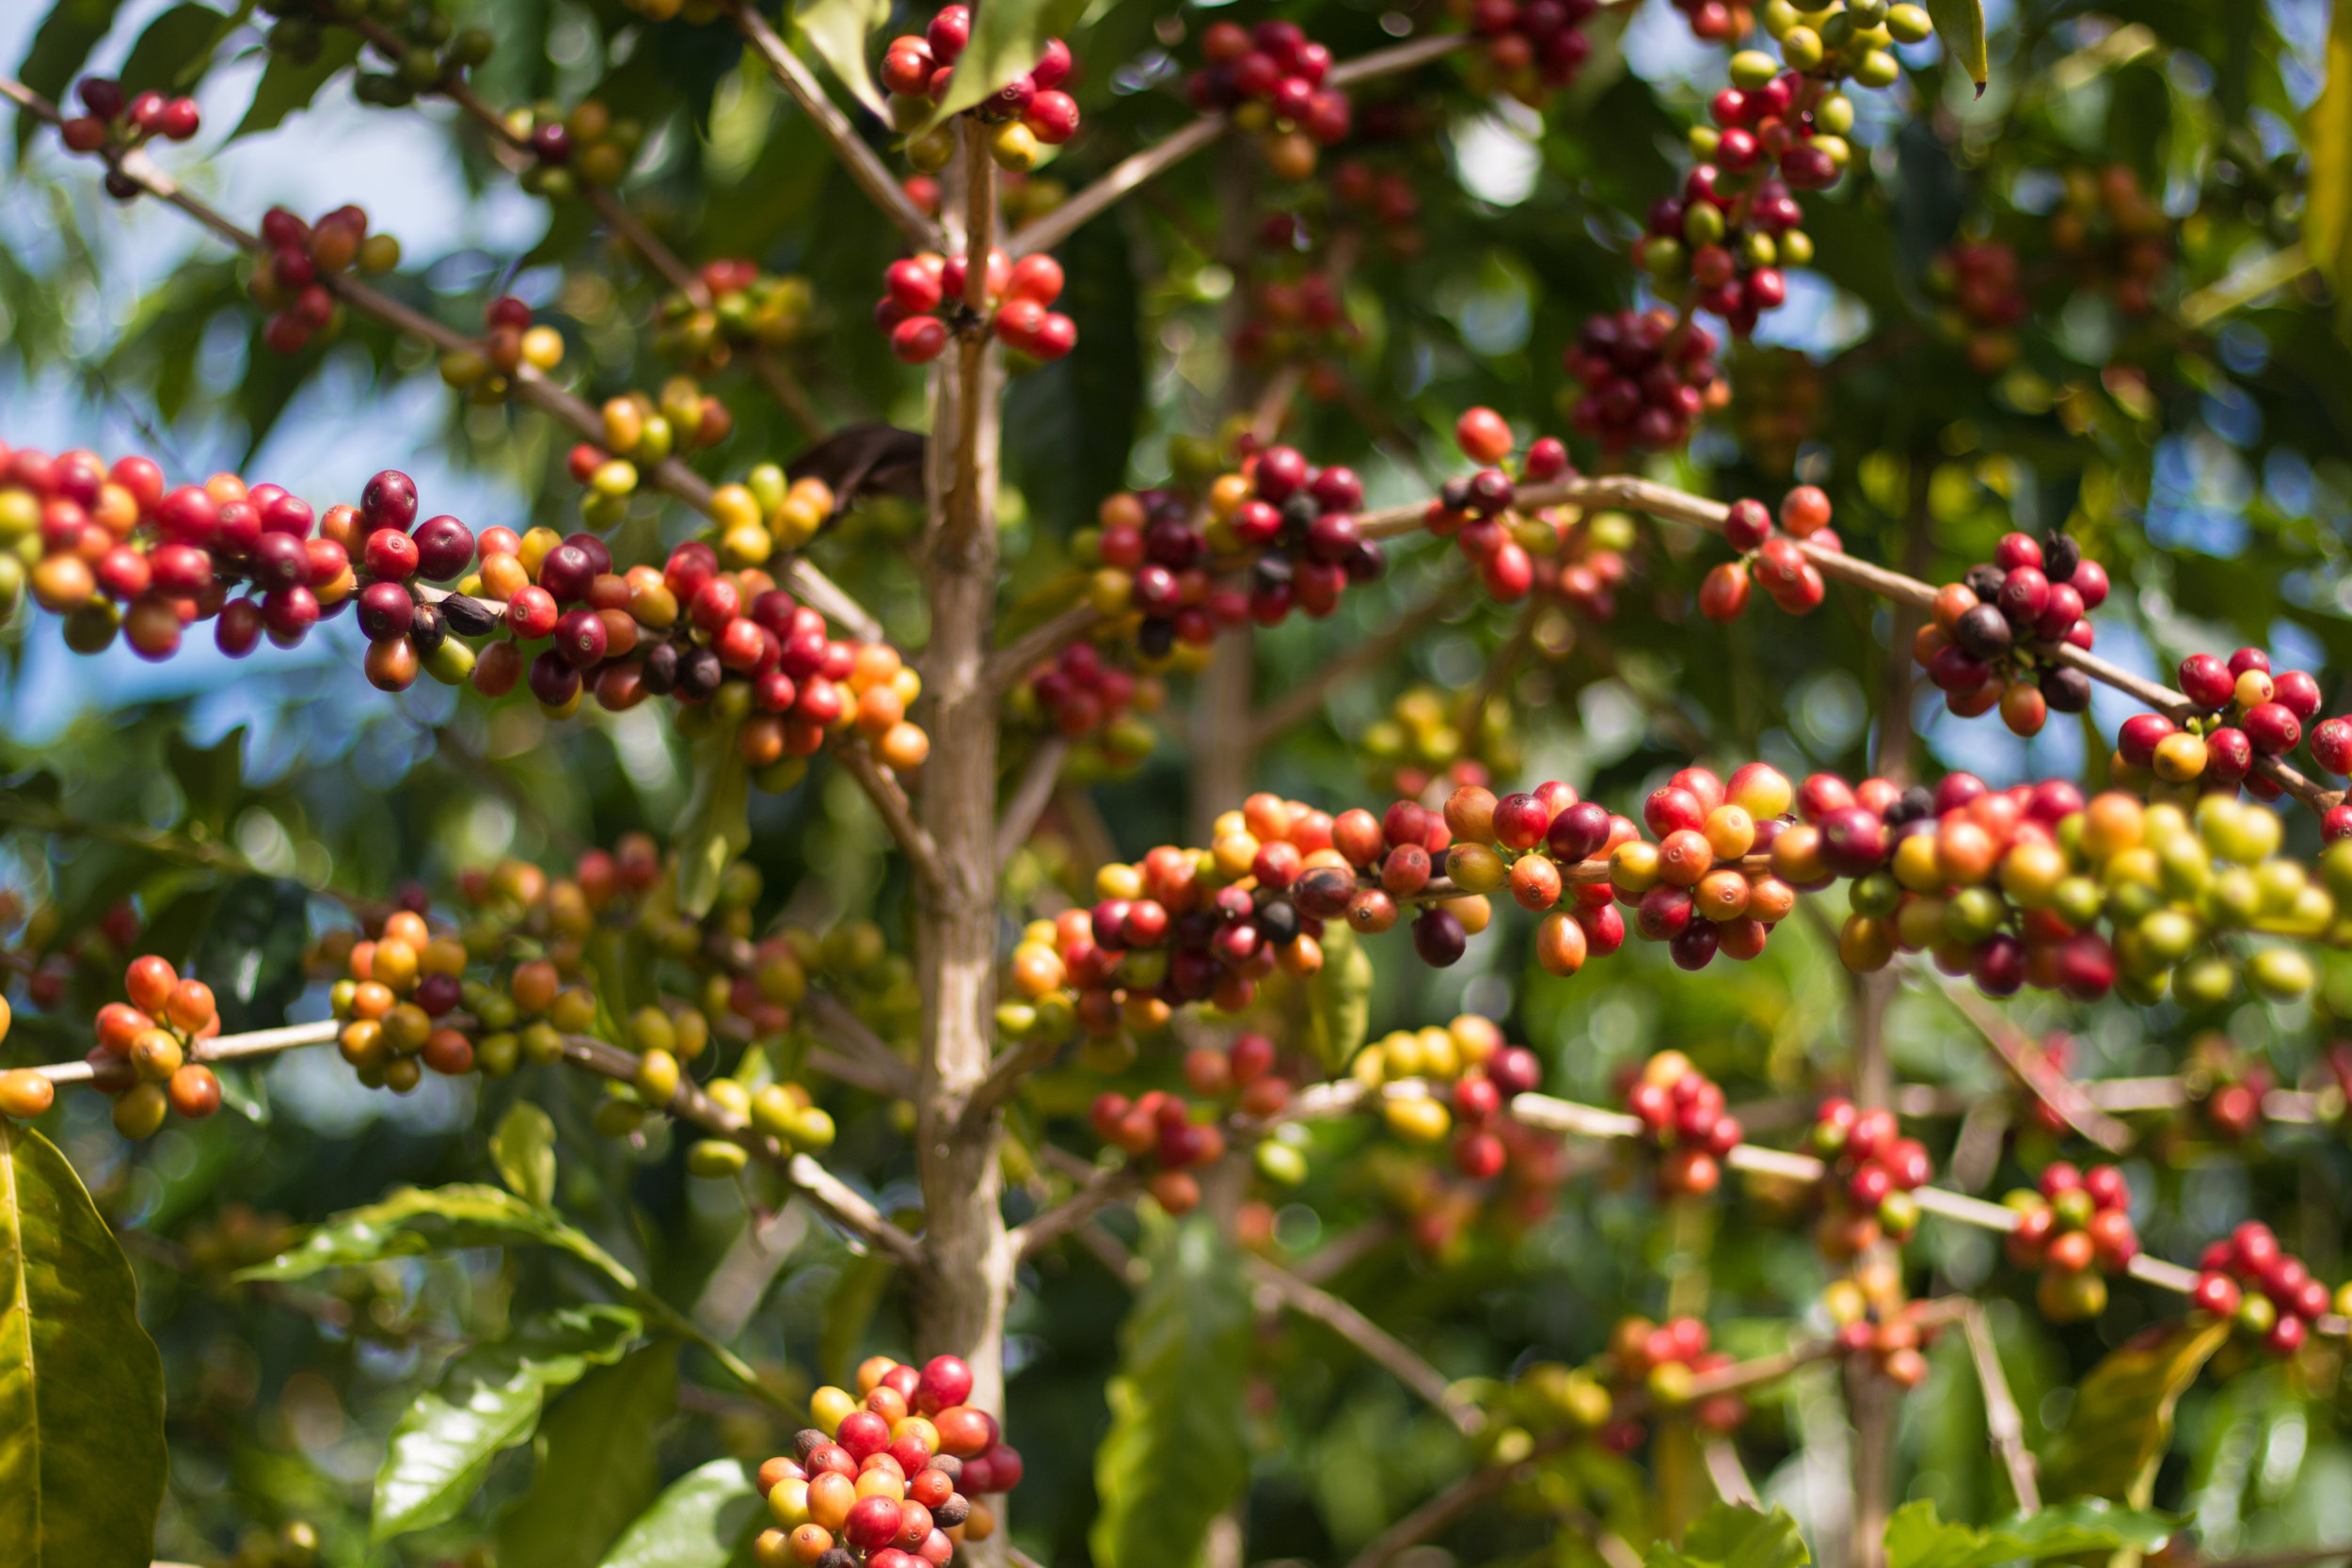 Only the brightest red coffee cherry are picked, leaving the fruit to ripen until another round of picking. PHOTO: Chance Ortiz